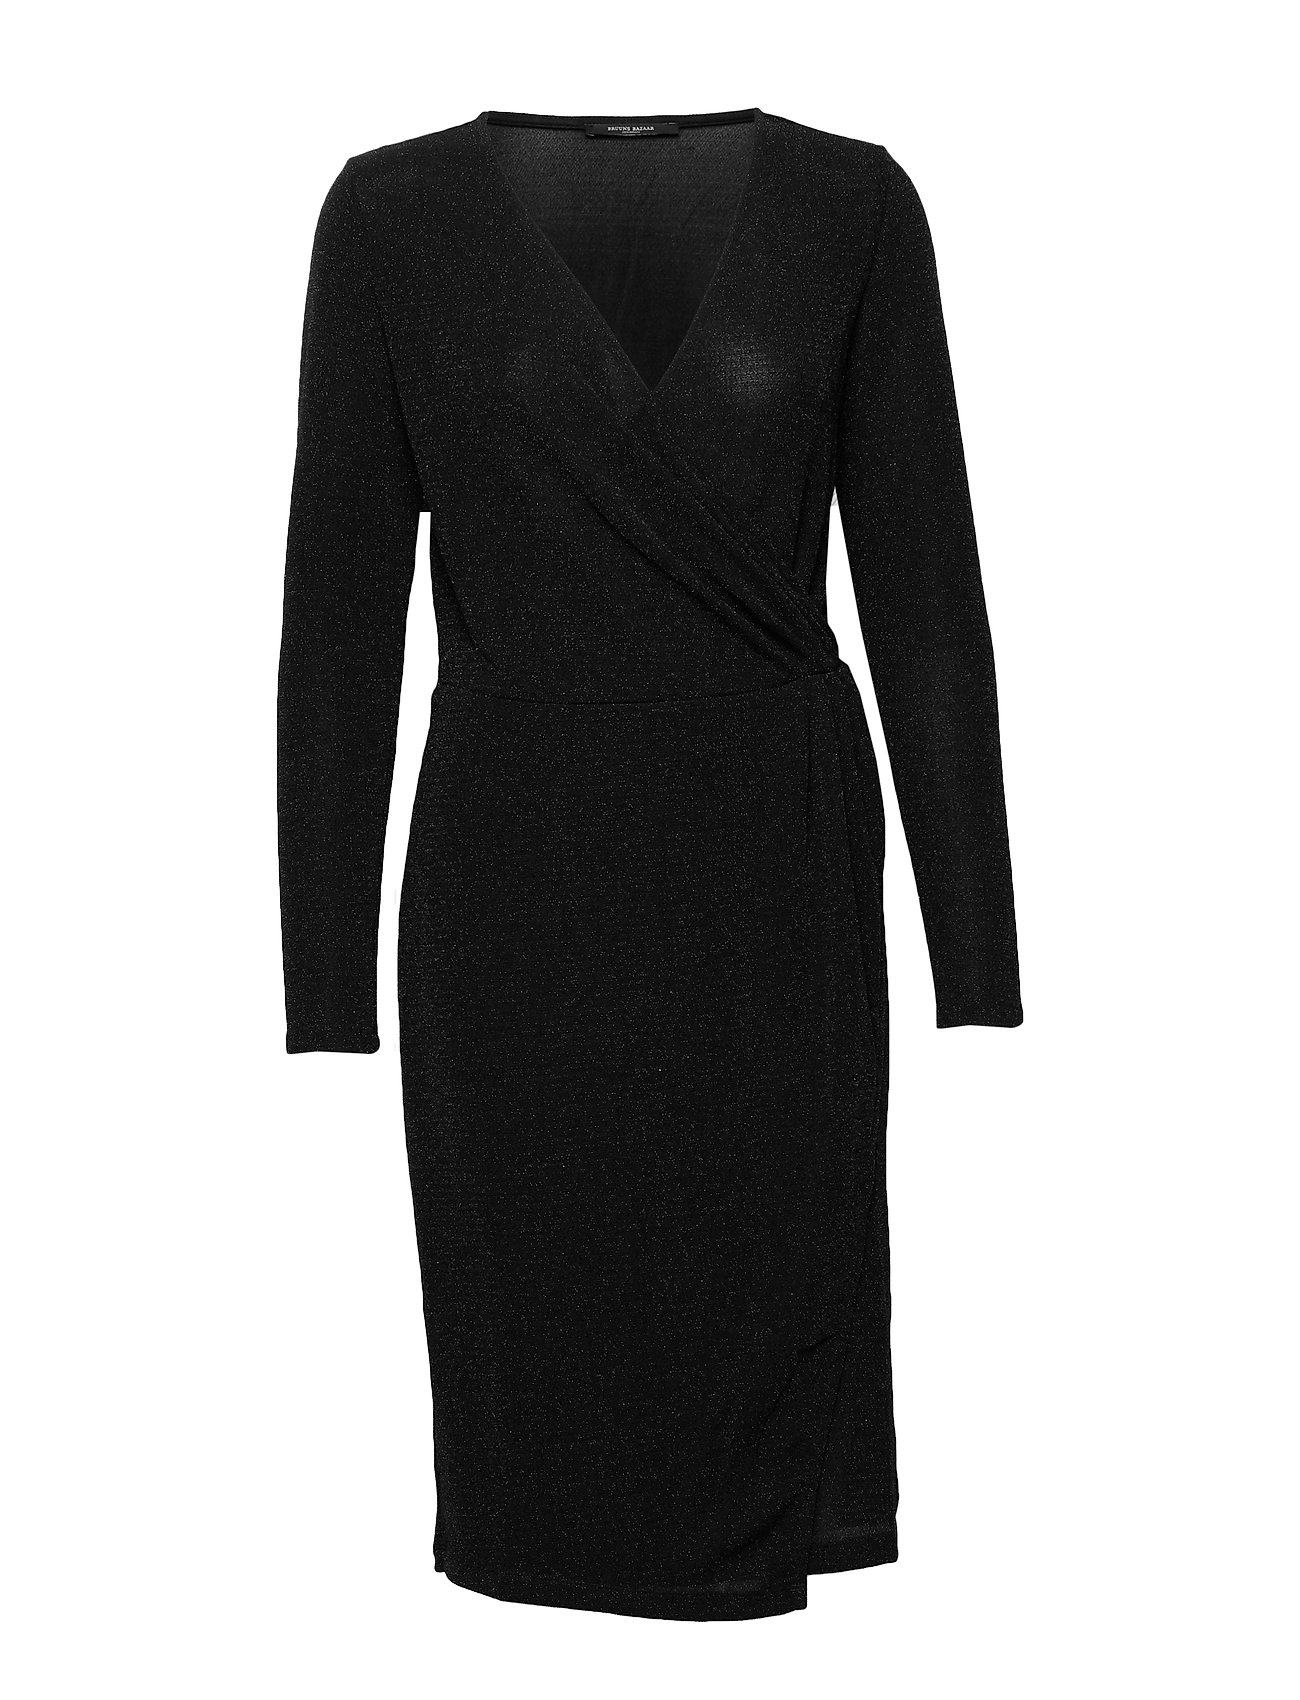 Bruuns Bazaar Riba Lina Dress - BLACK/SILVER